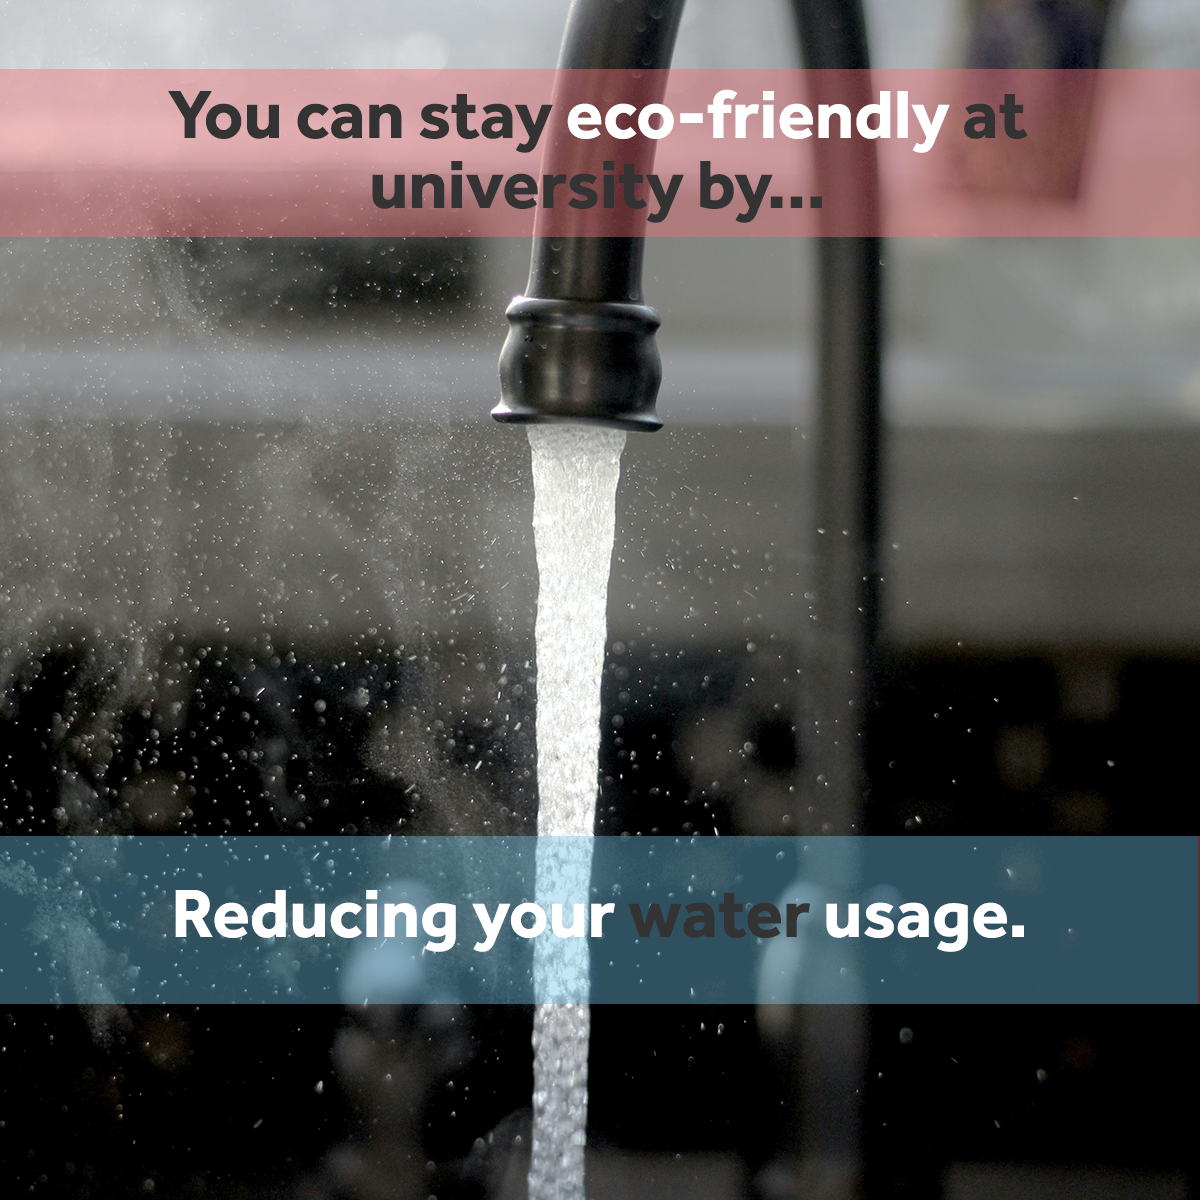 Reducing water usage - eco friendly at university